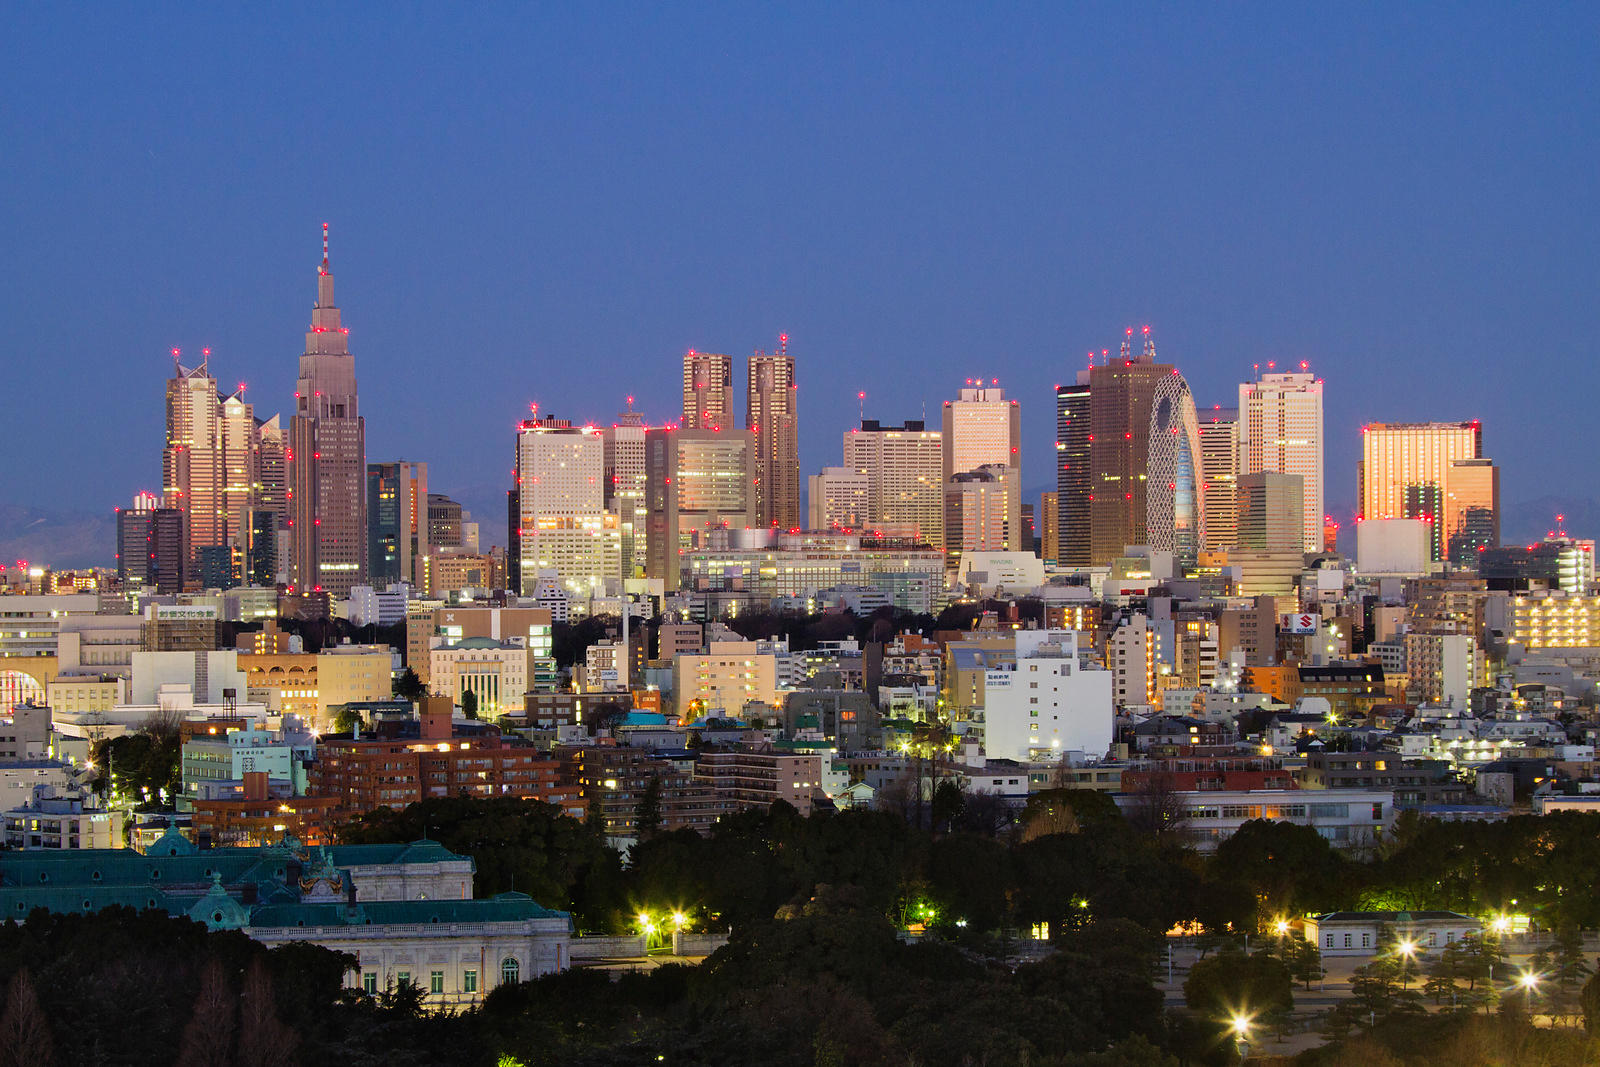 Shinjuku Skyline at dawn